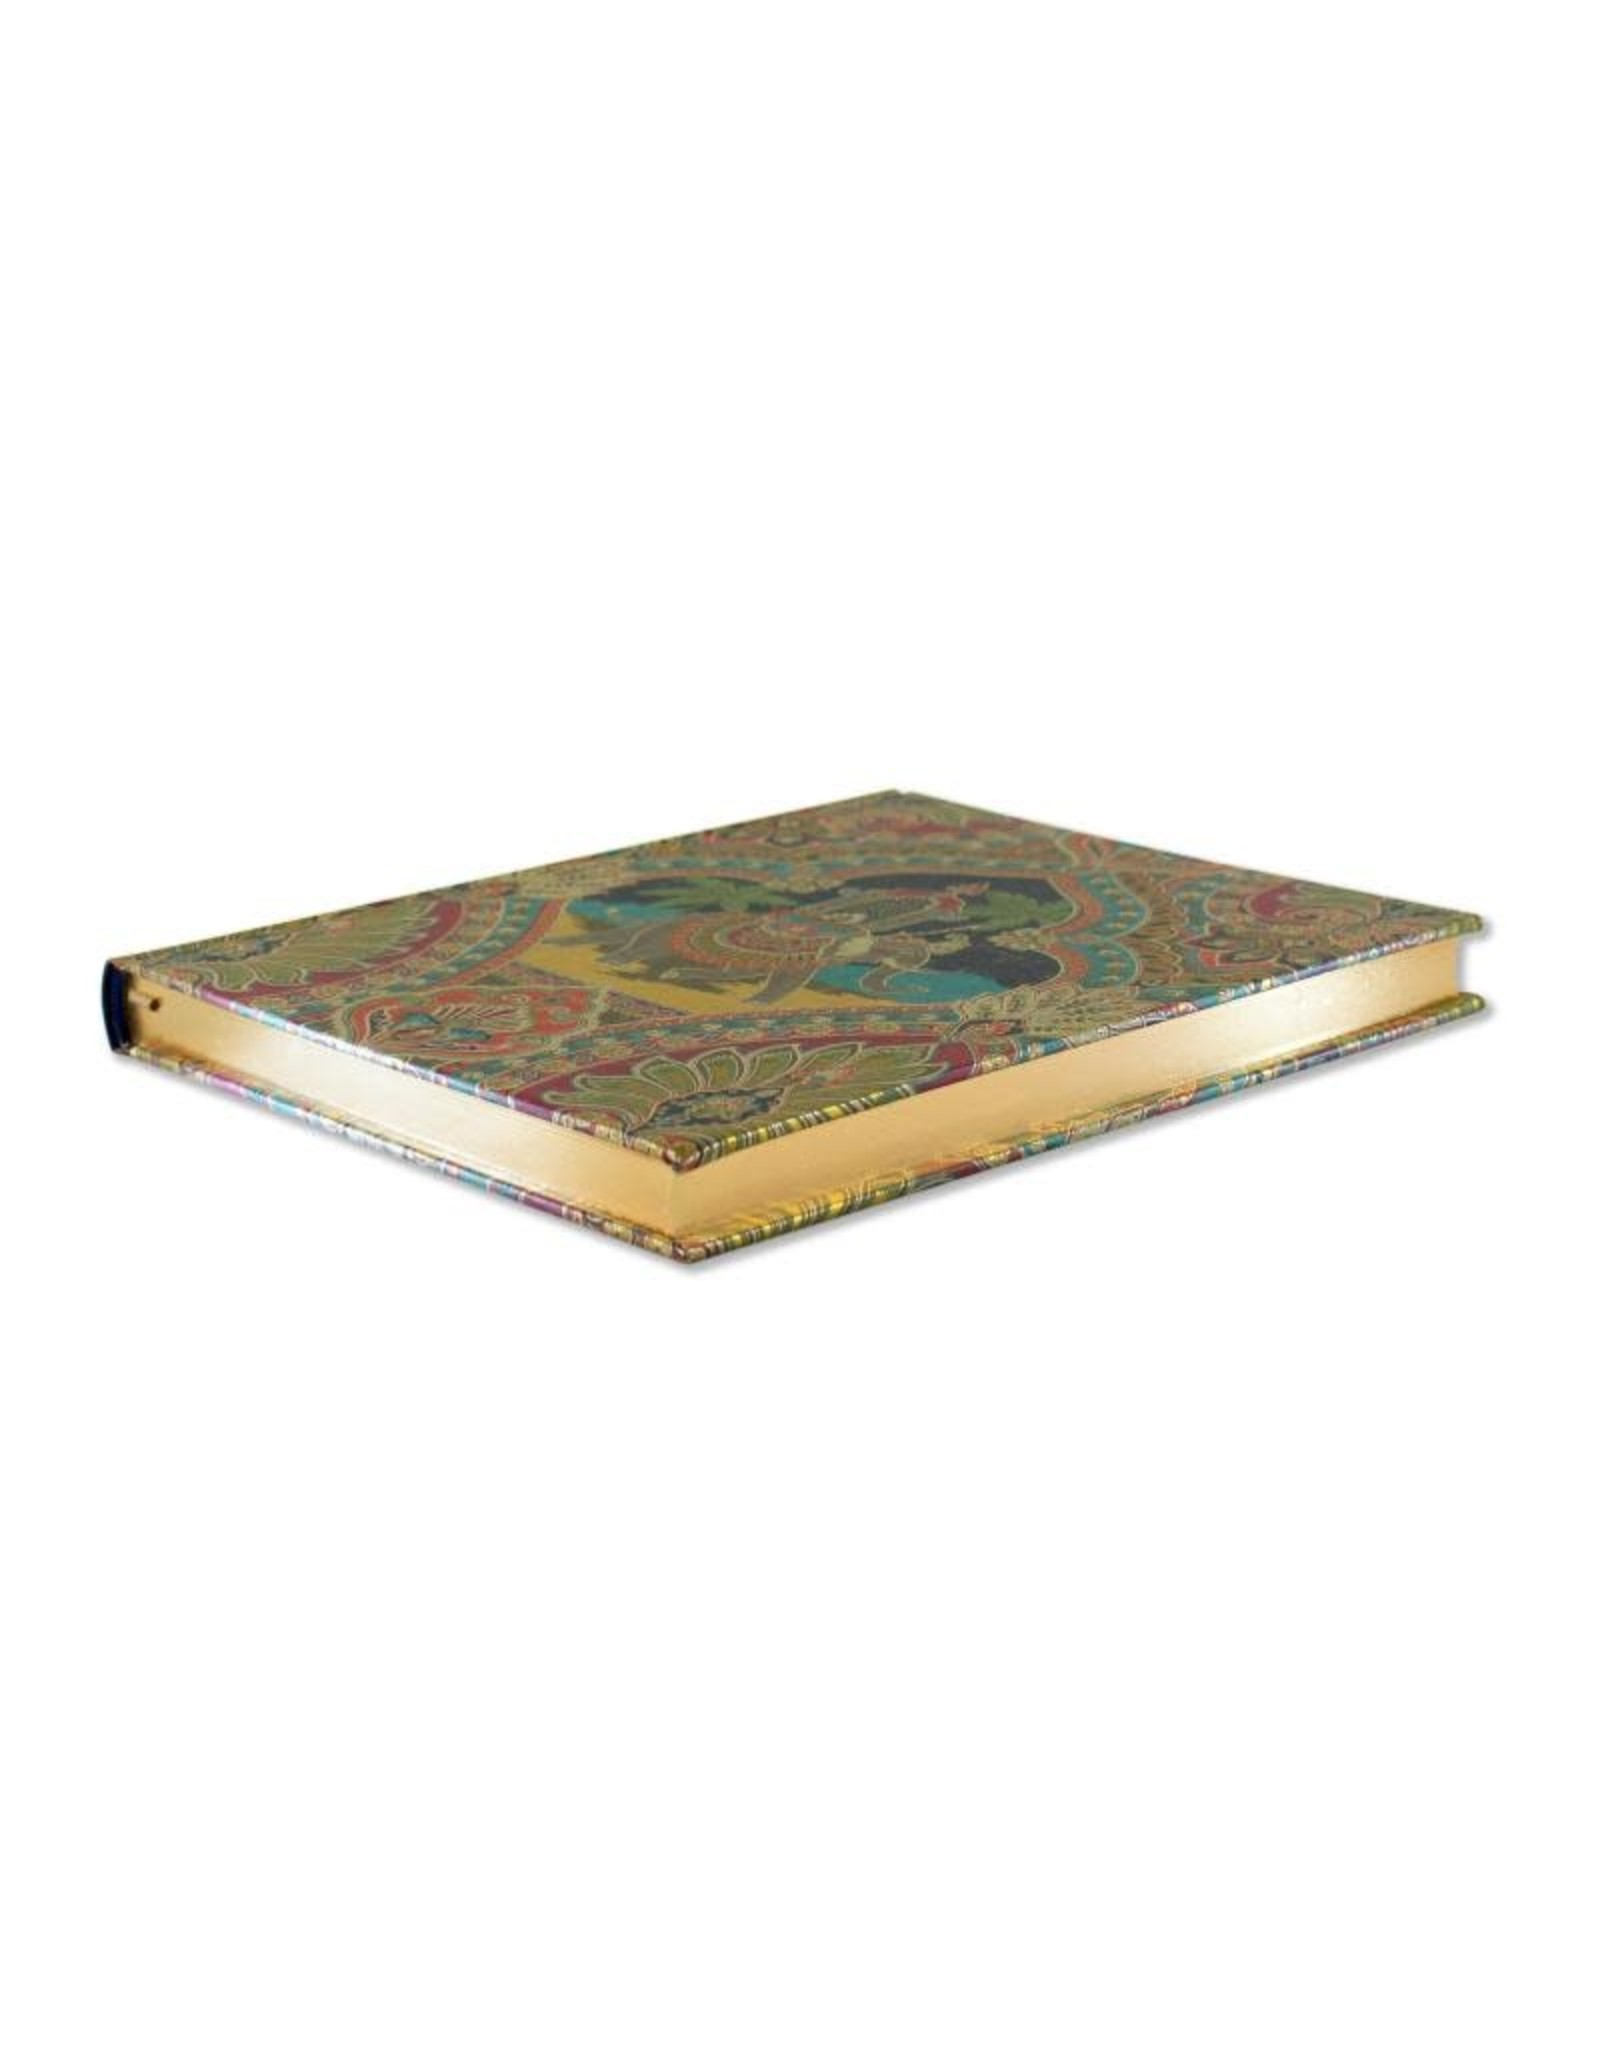 Peter Pauper Elephant Festival Oversized Journal